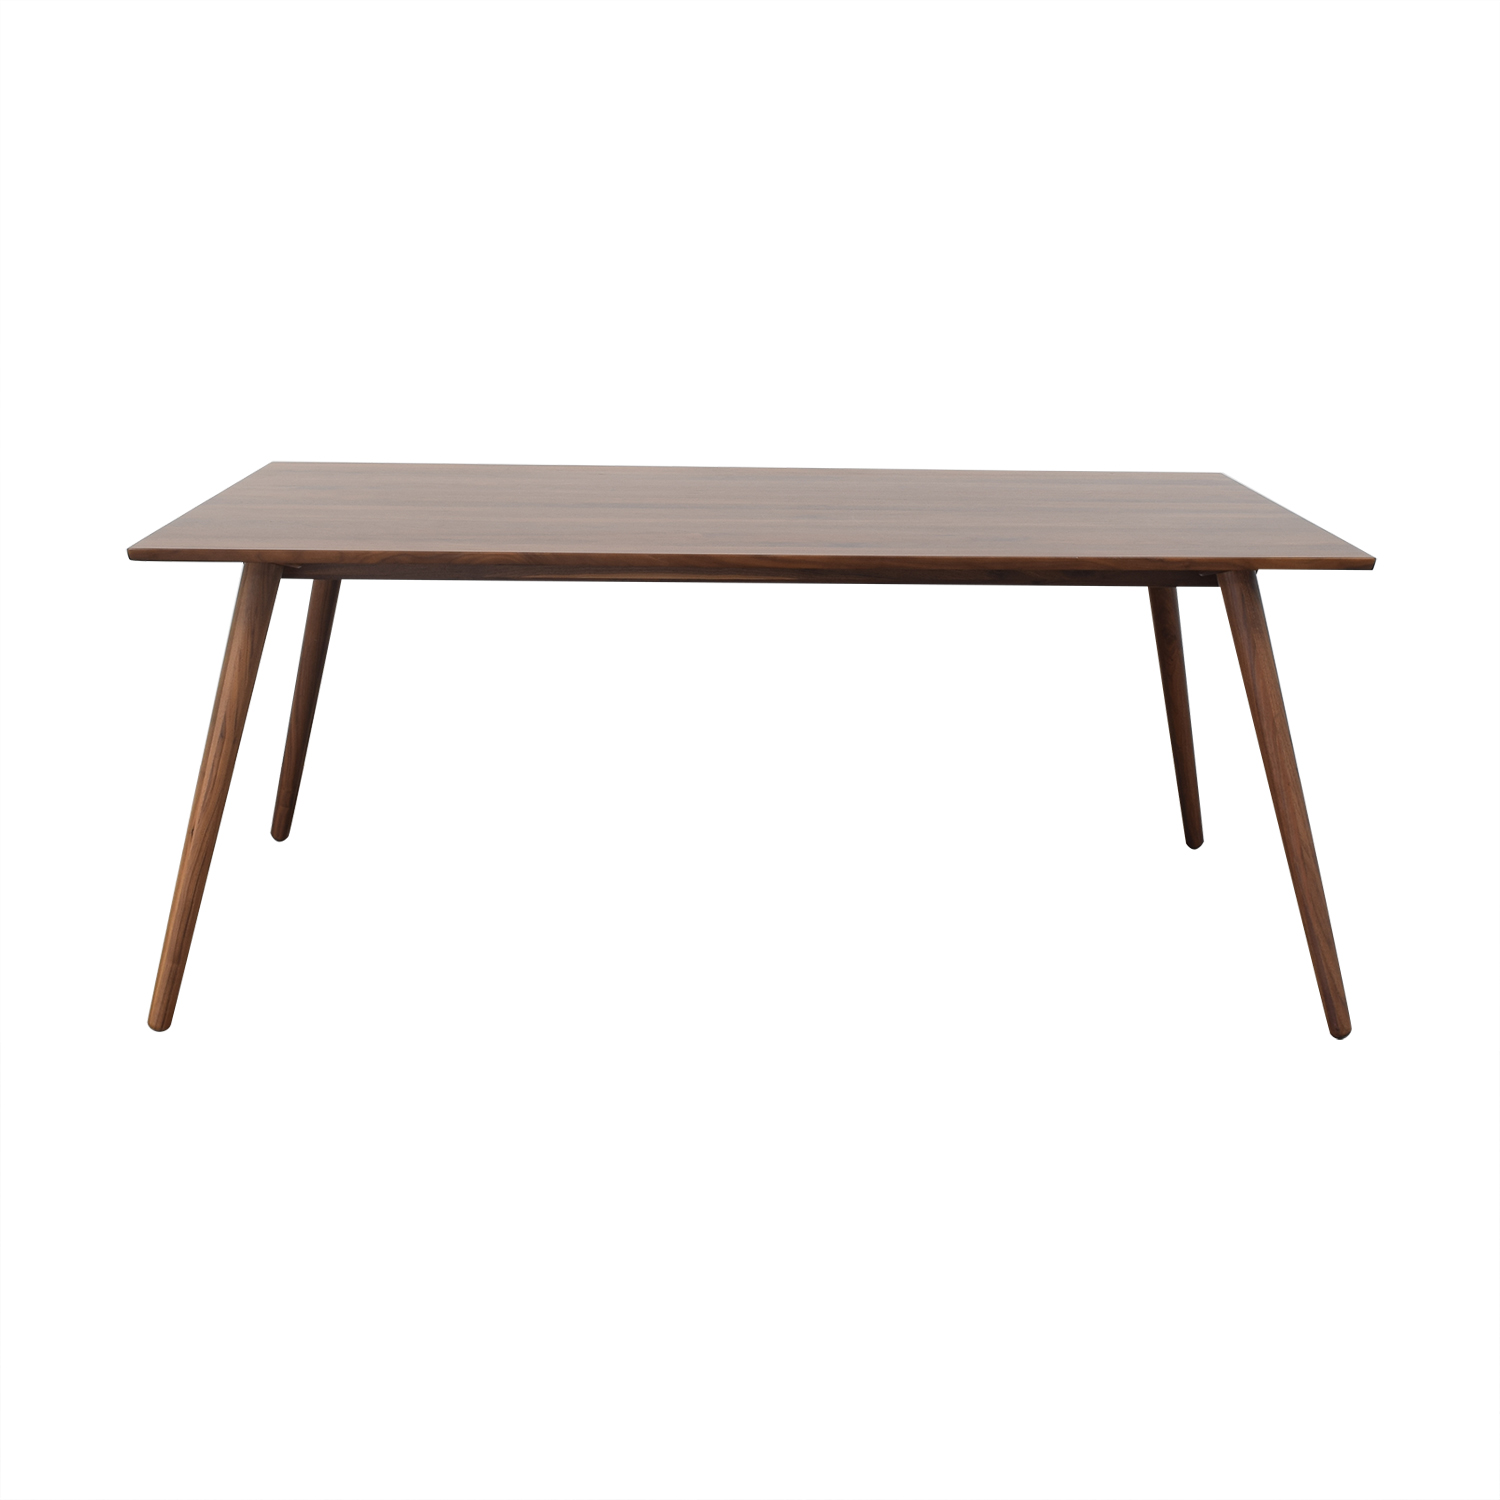 Article Article Seno Dining Table dimensions